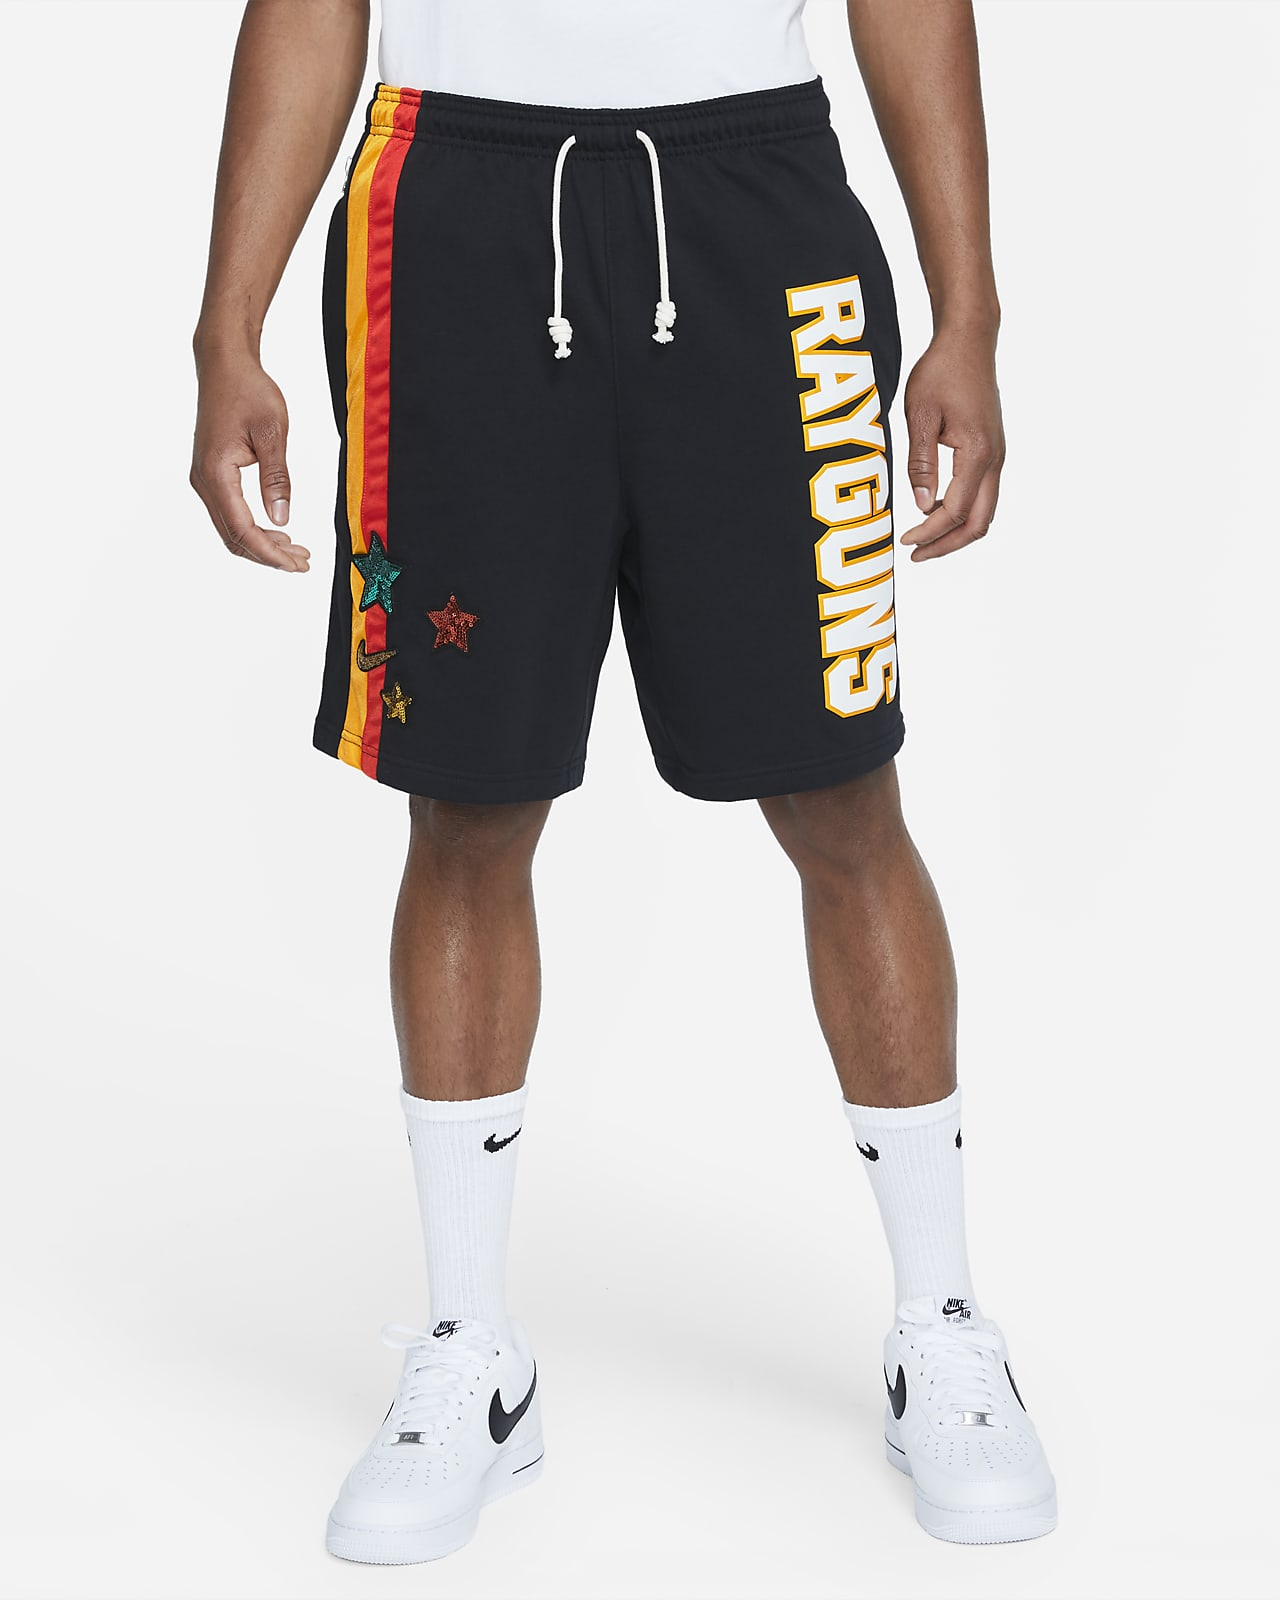 Nike Dri-FIT Rayguns Men's Premium Basketball Shorts